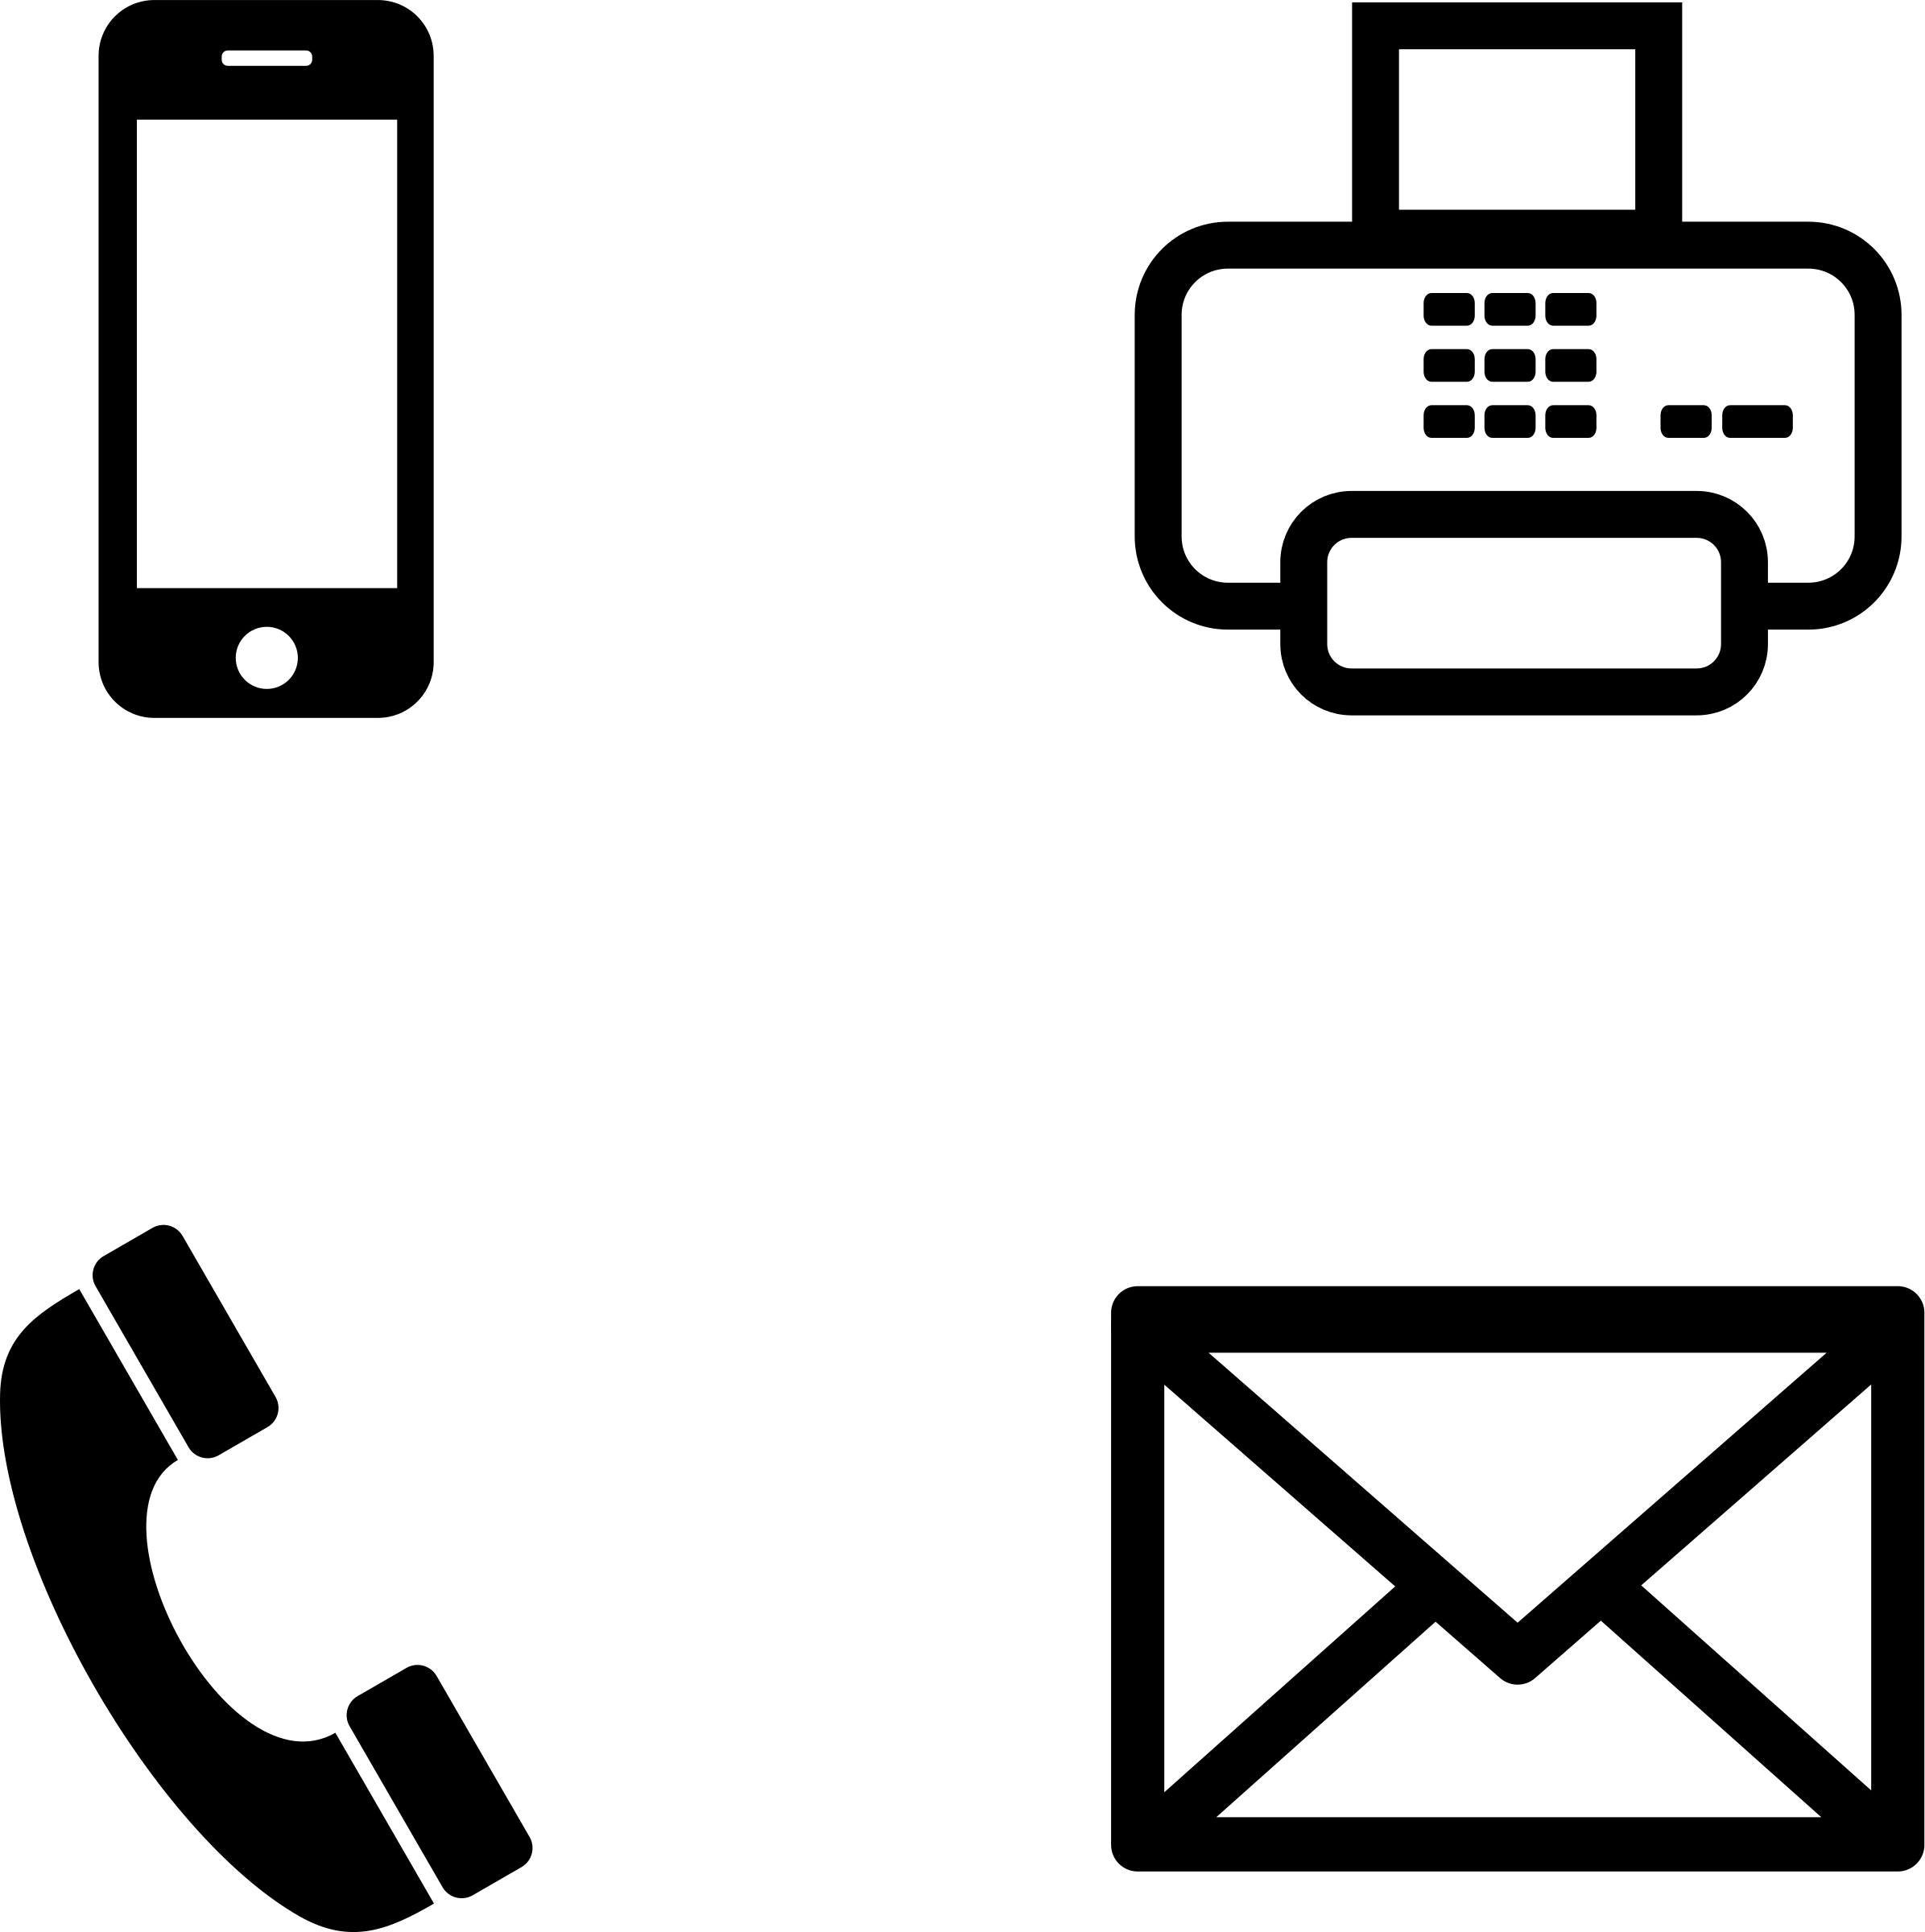 telephone clipart telephone icon #145544151